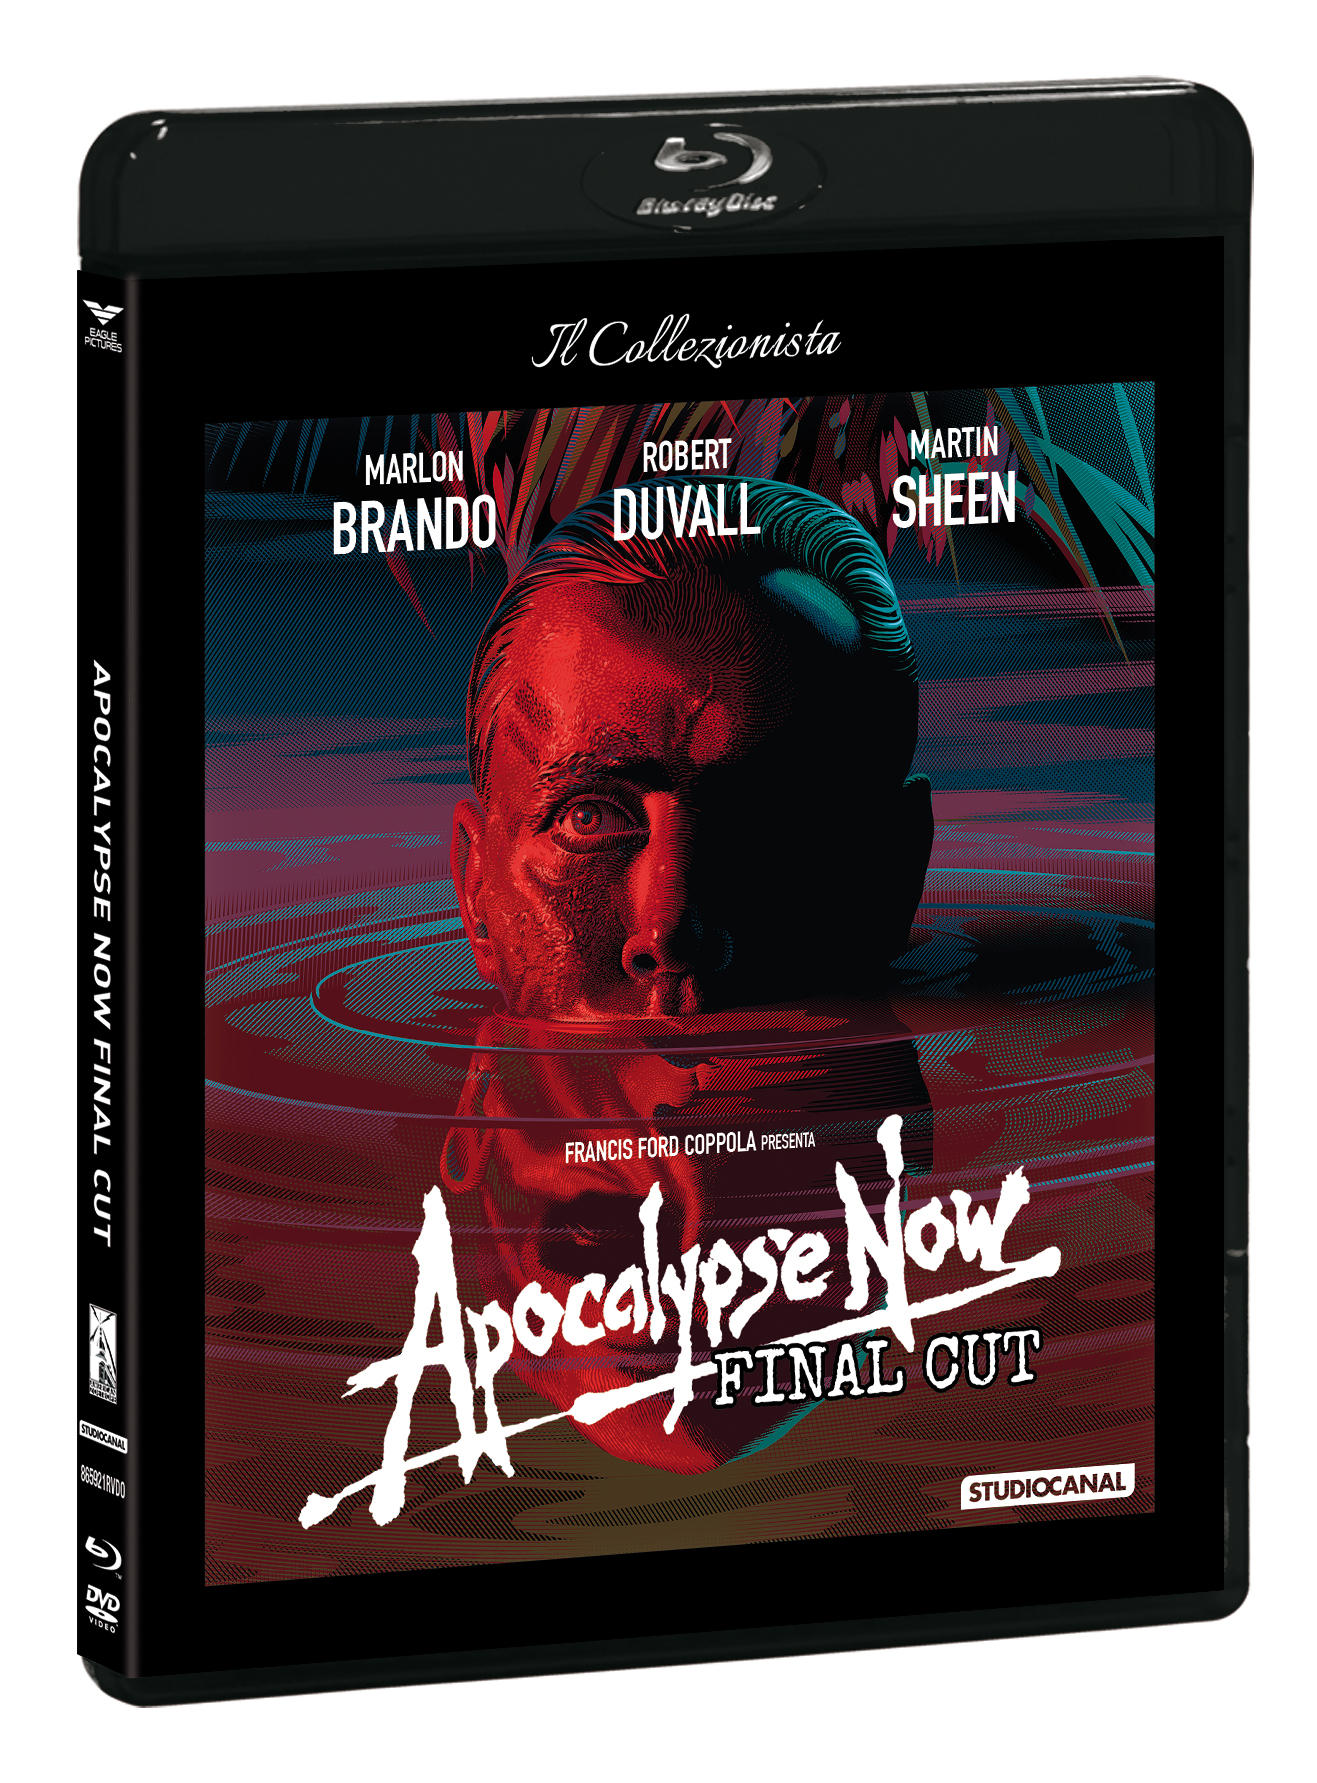 APOCALYPSE NOW FINAL CUT (BLU-RAY+DVD)